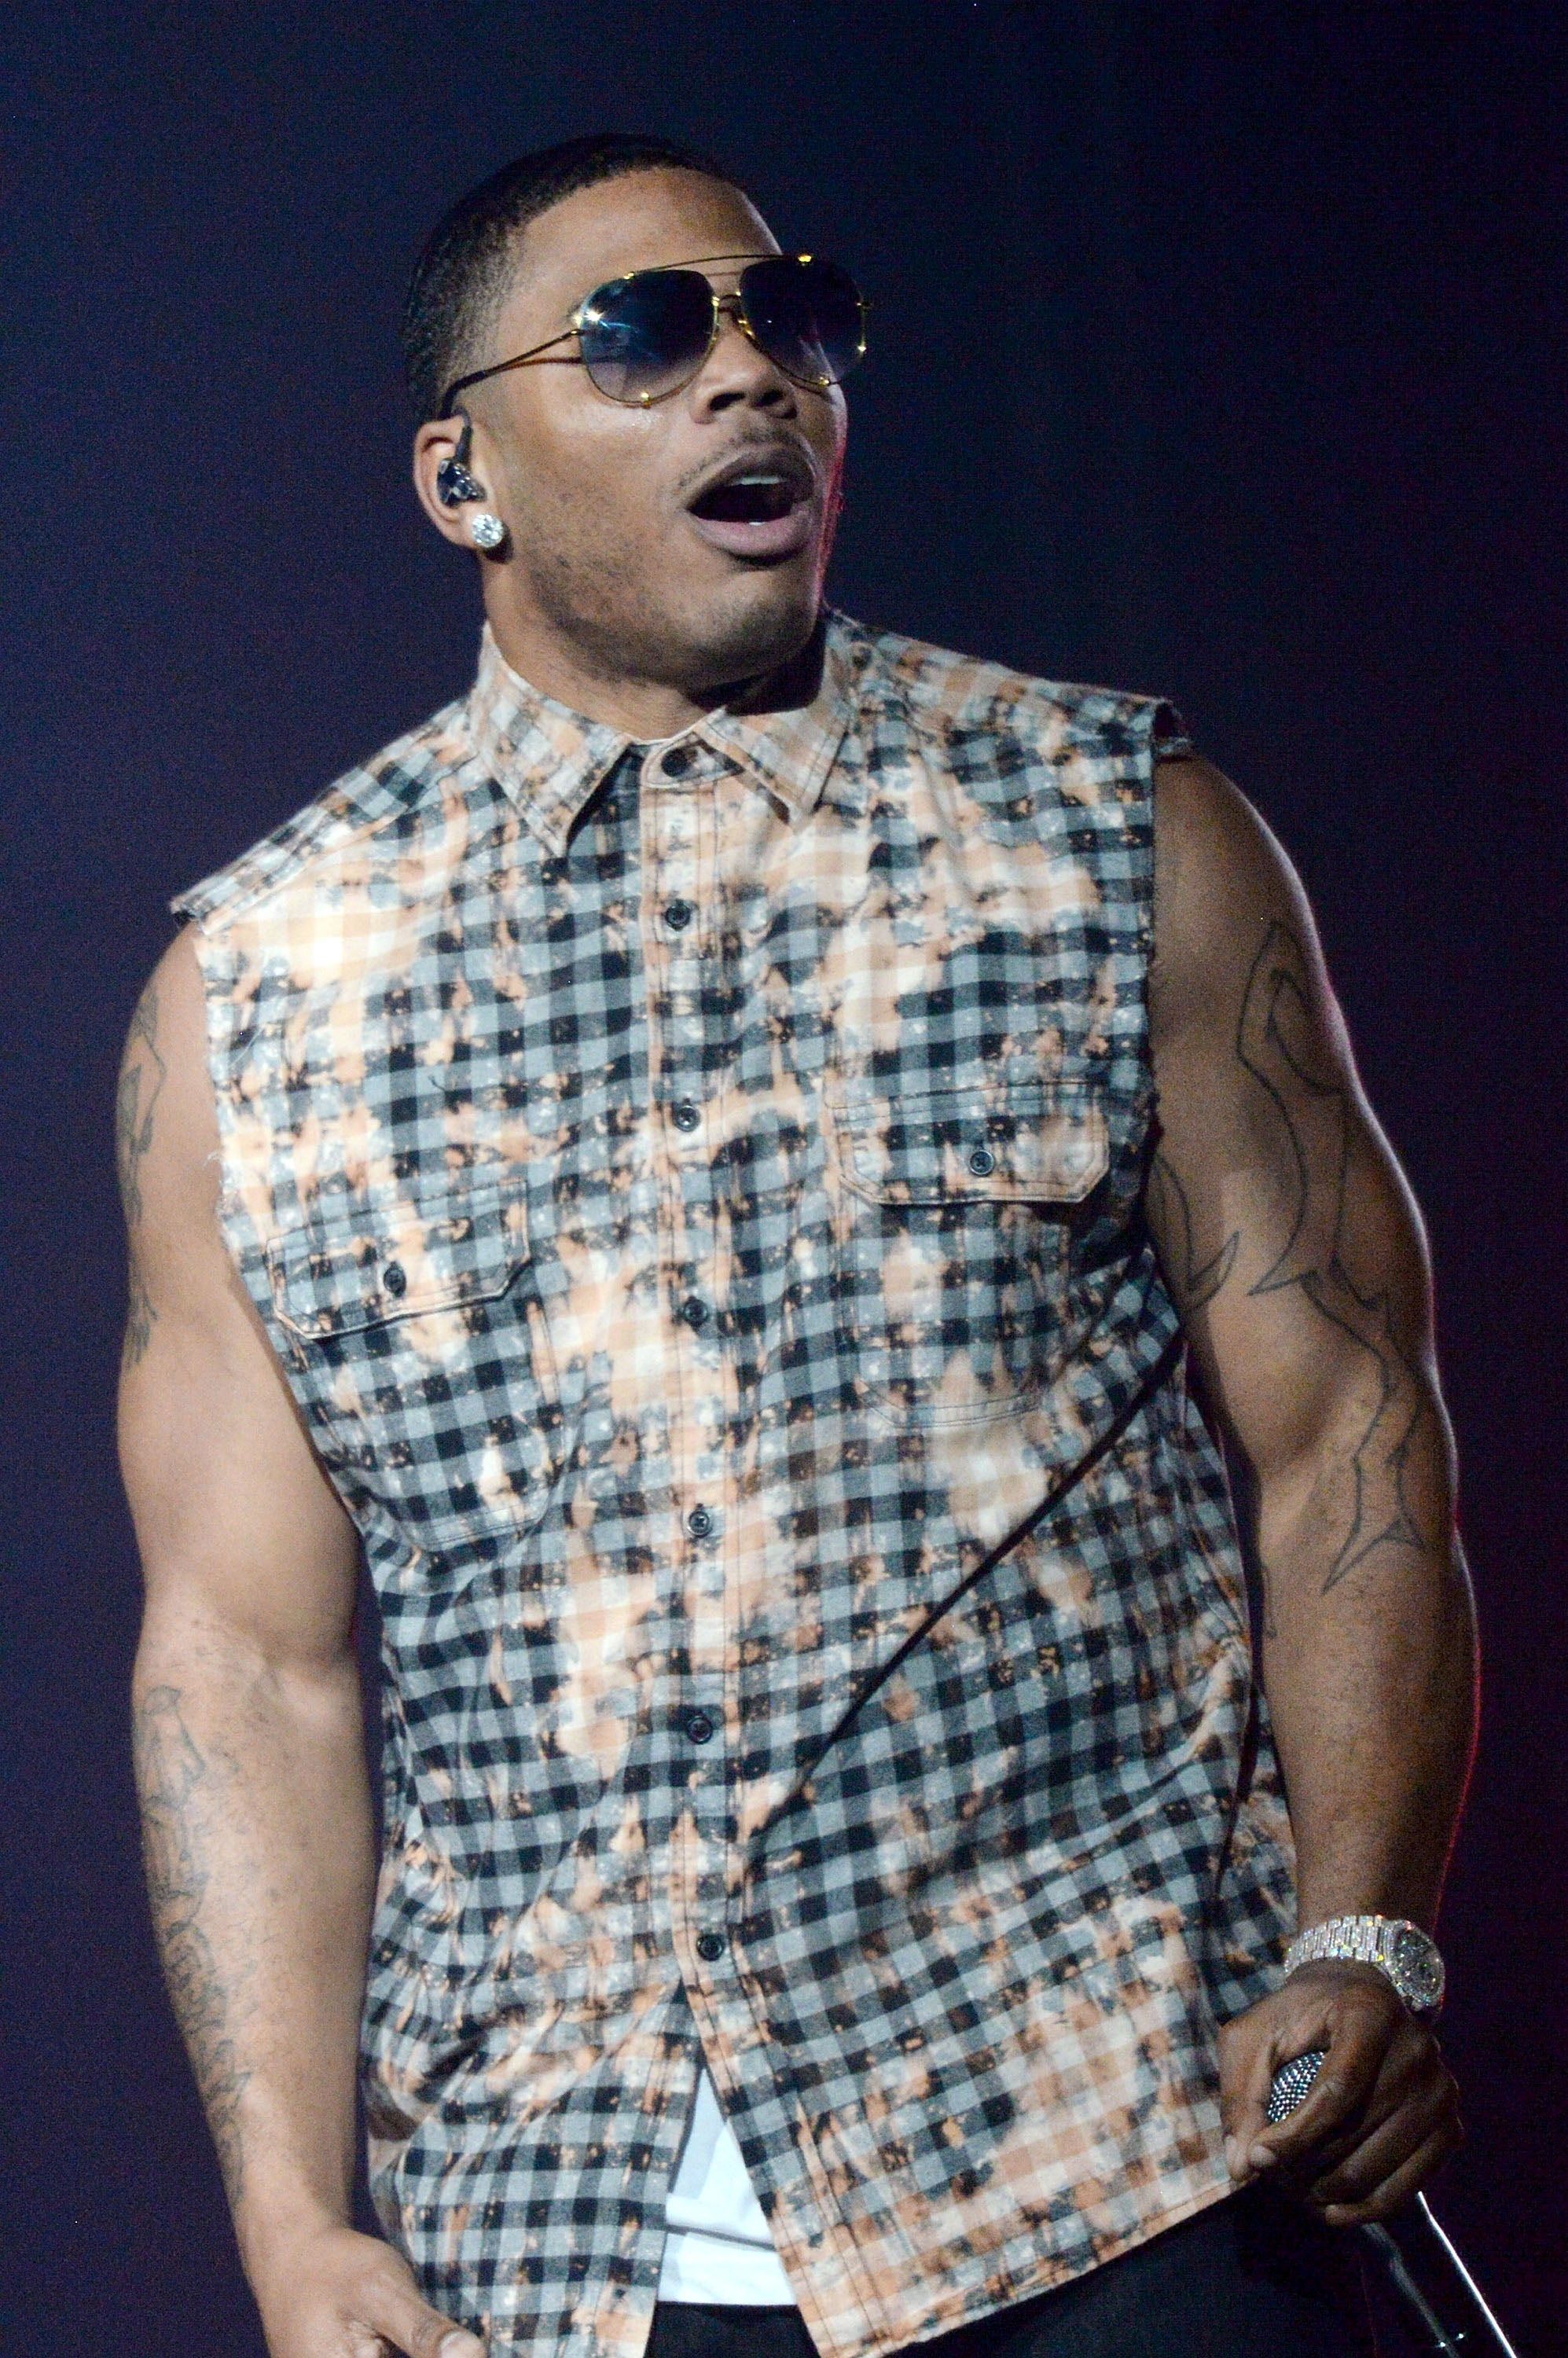 Rapper Nelly Denies That He Sexually Assaulted a Woman While on Tour After Early Morning Arrest